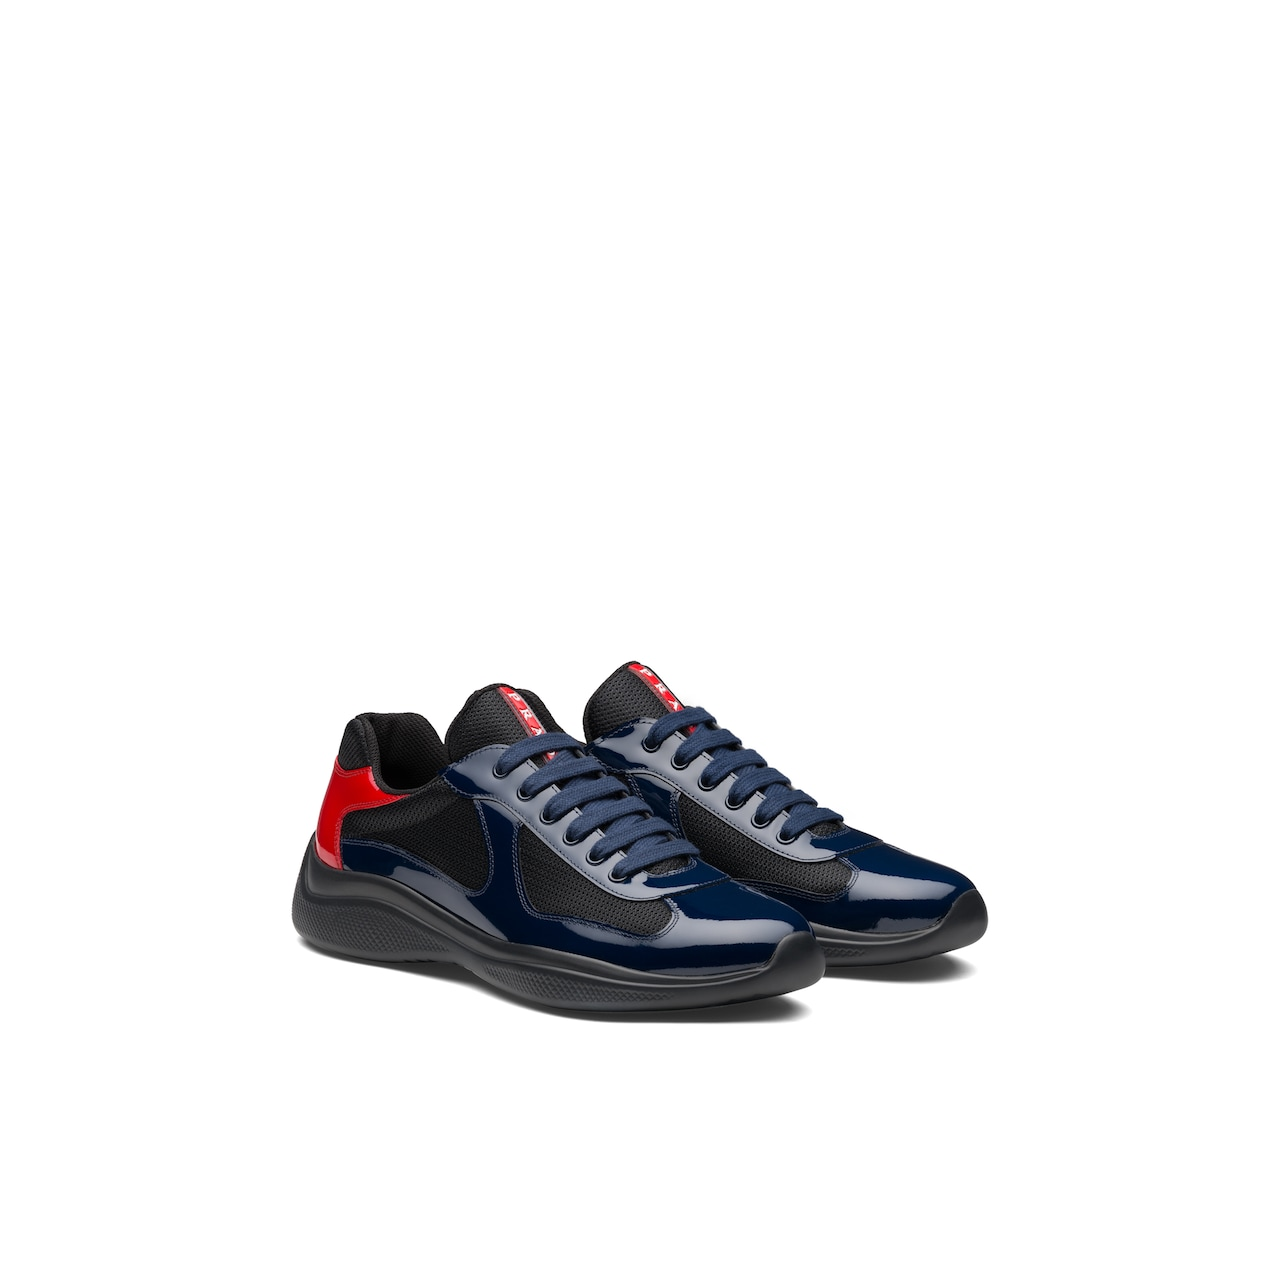 Prada America's Cup patent leather and nylon sneakers 1